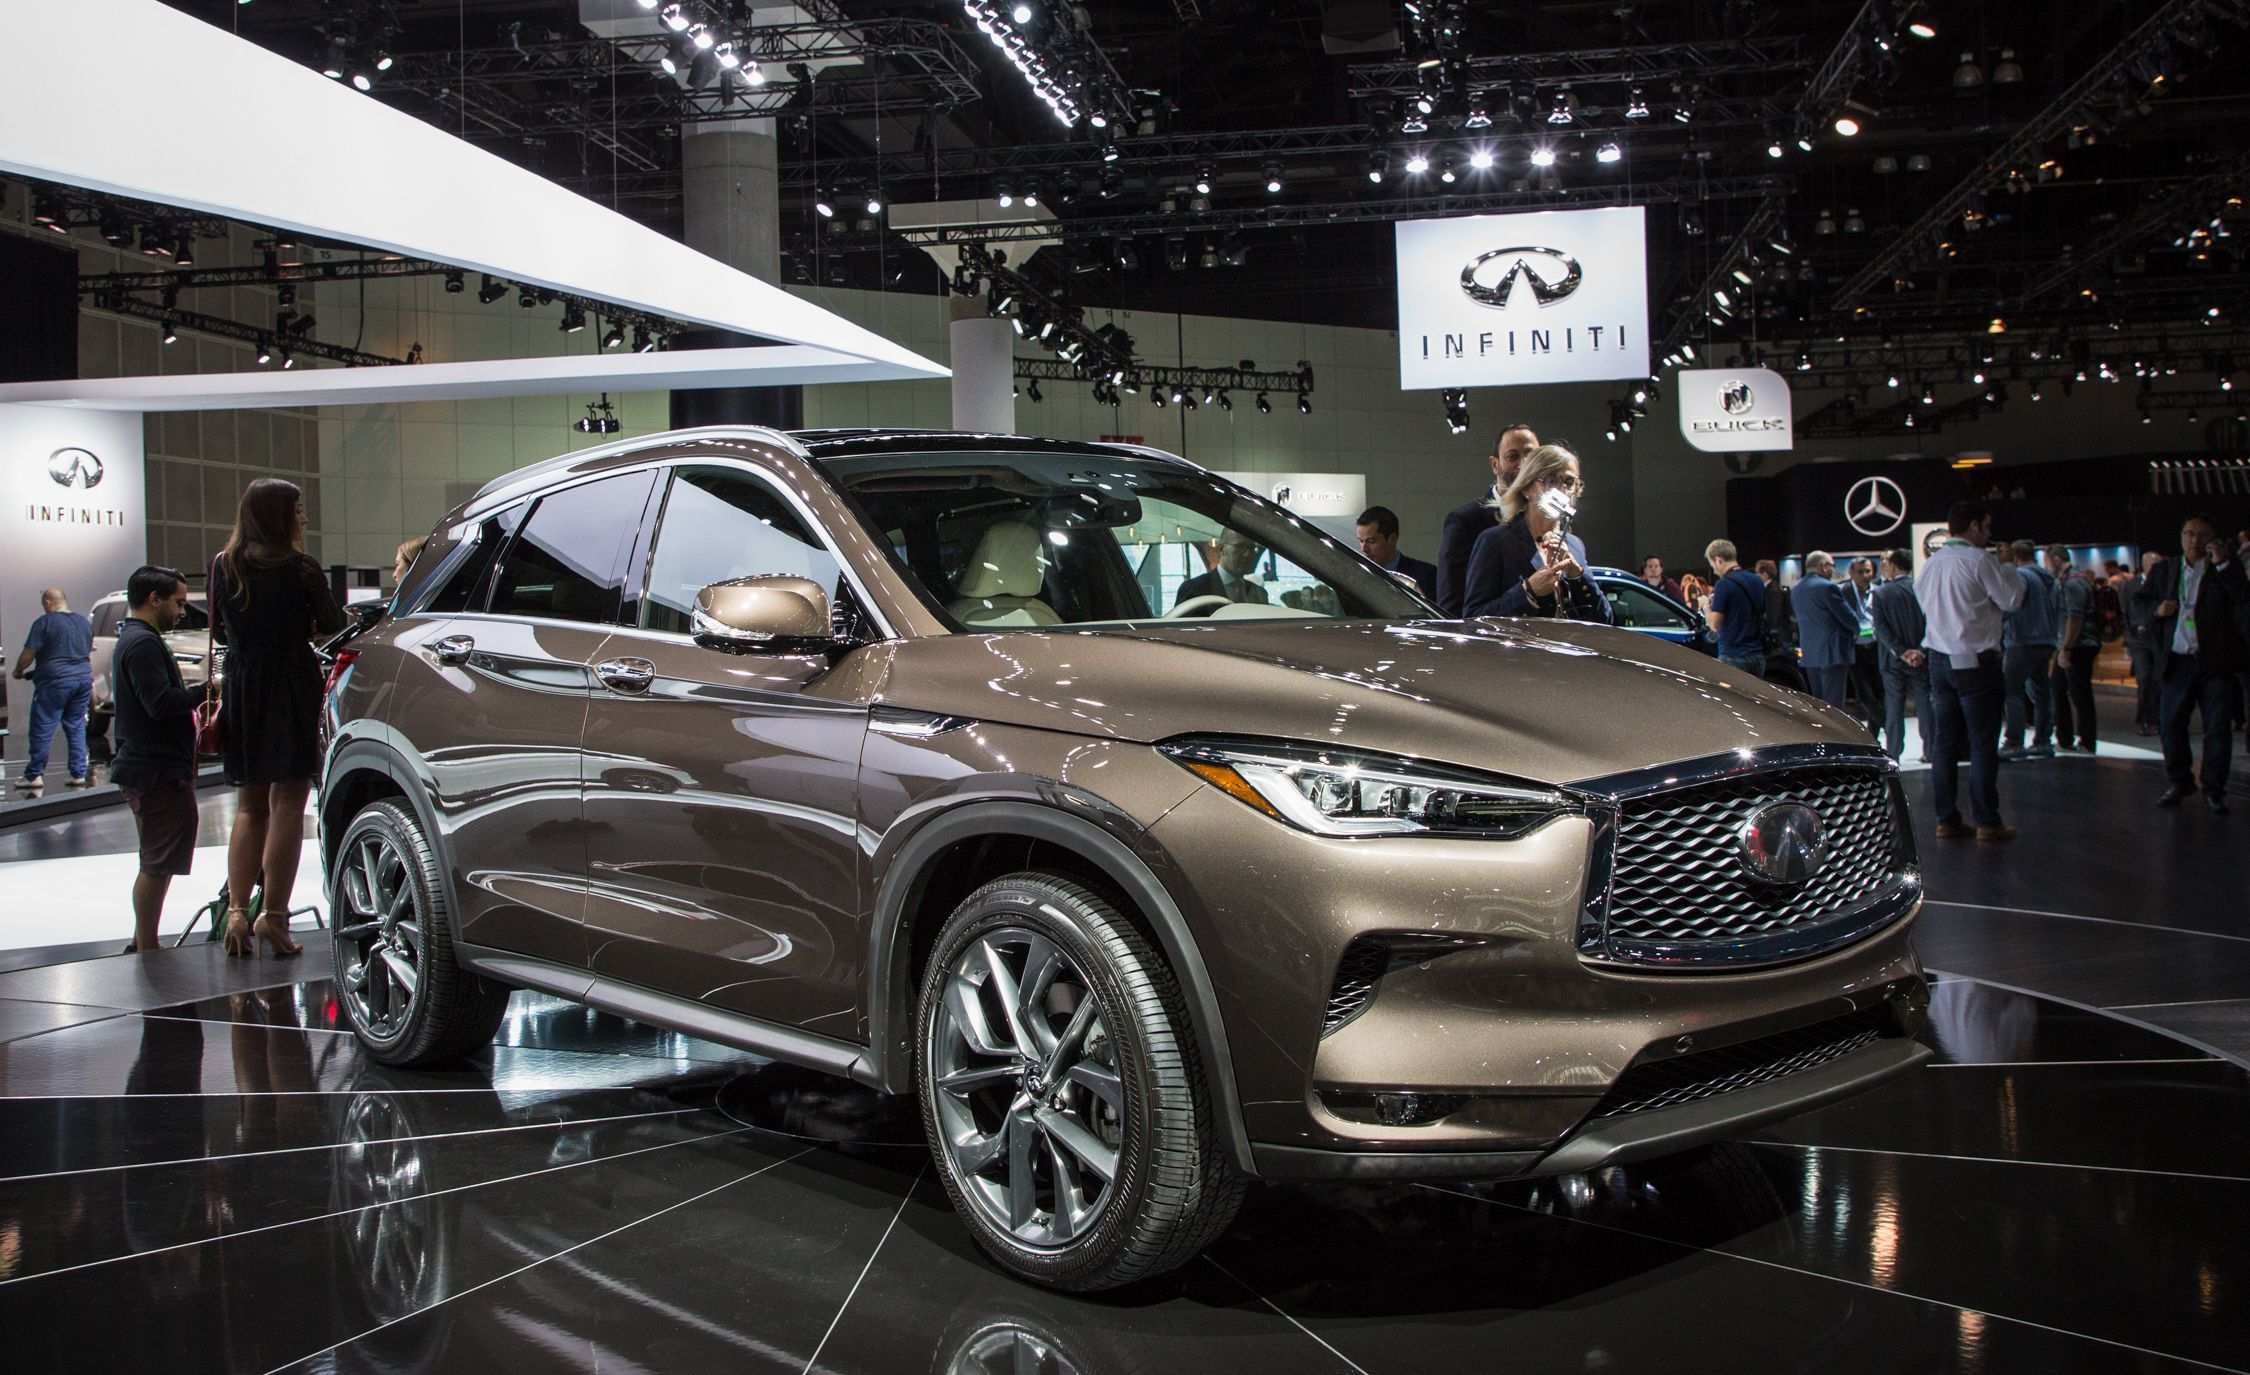 72 Concept of The Infiniti Qx50 2019 Hybrid Concept Engine for The Infiniti Qx50 2019 Hybrid Concept